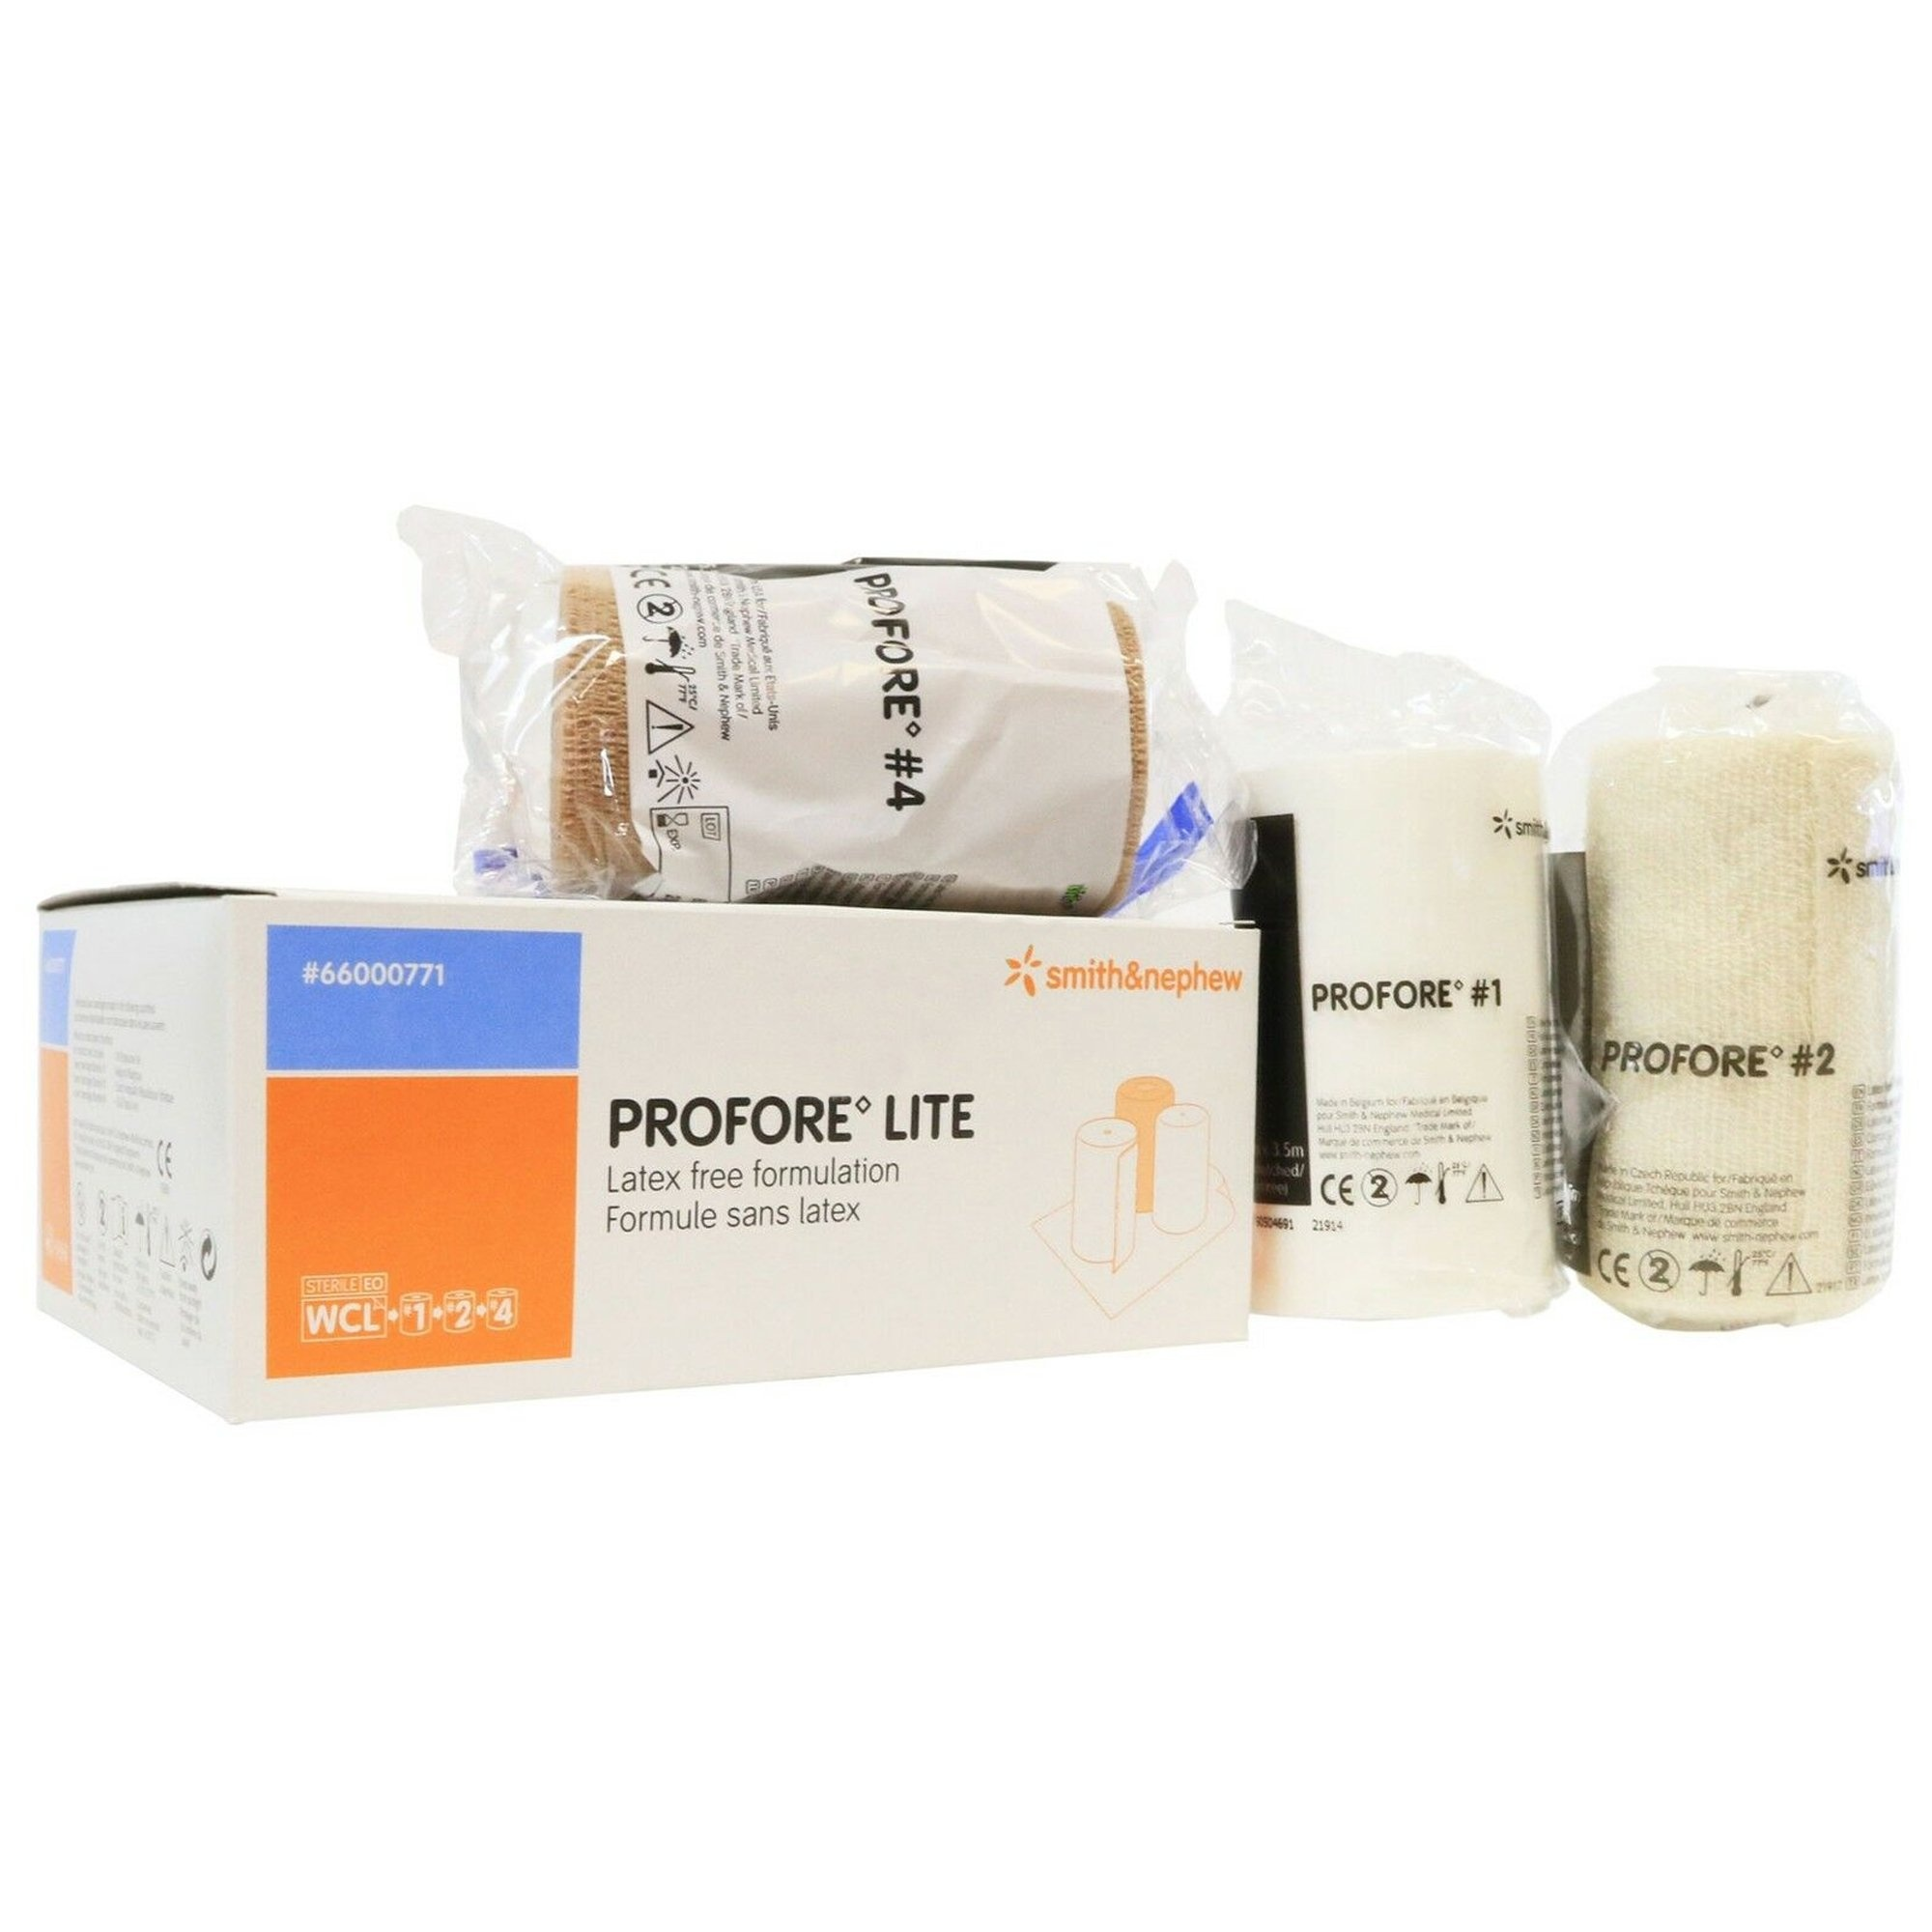 Smith & Nephew Profore Lite 3-Layer Compression Bandage System, 66000771, 1 Pack